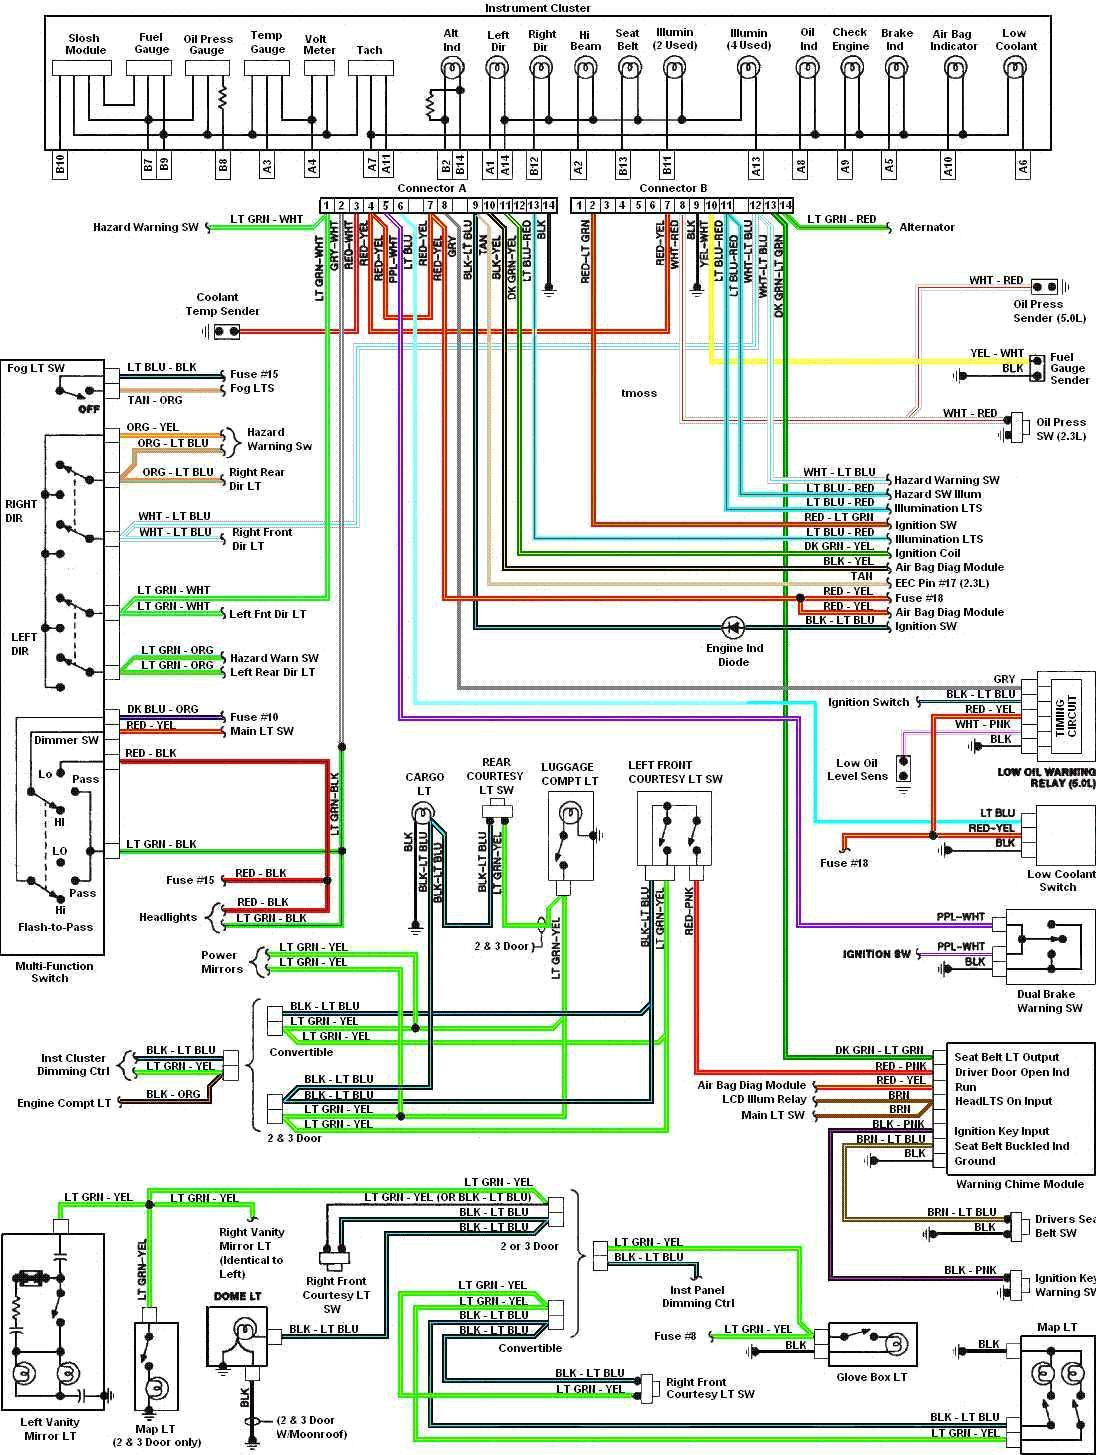 2004 F 350 Fuse Diagram - Wiring Diagrams F F Fuse Box on